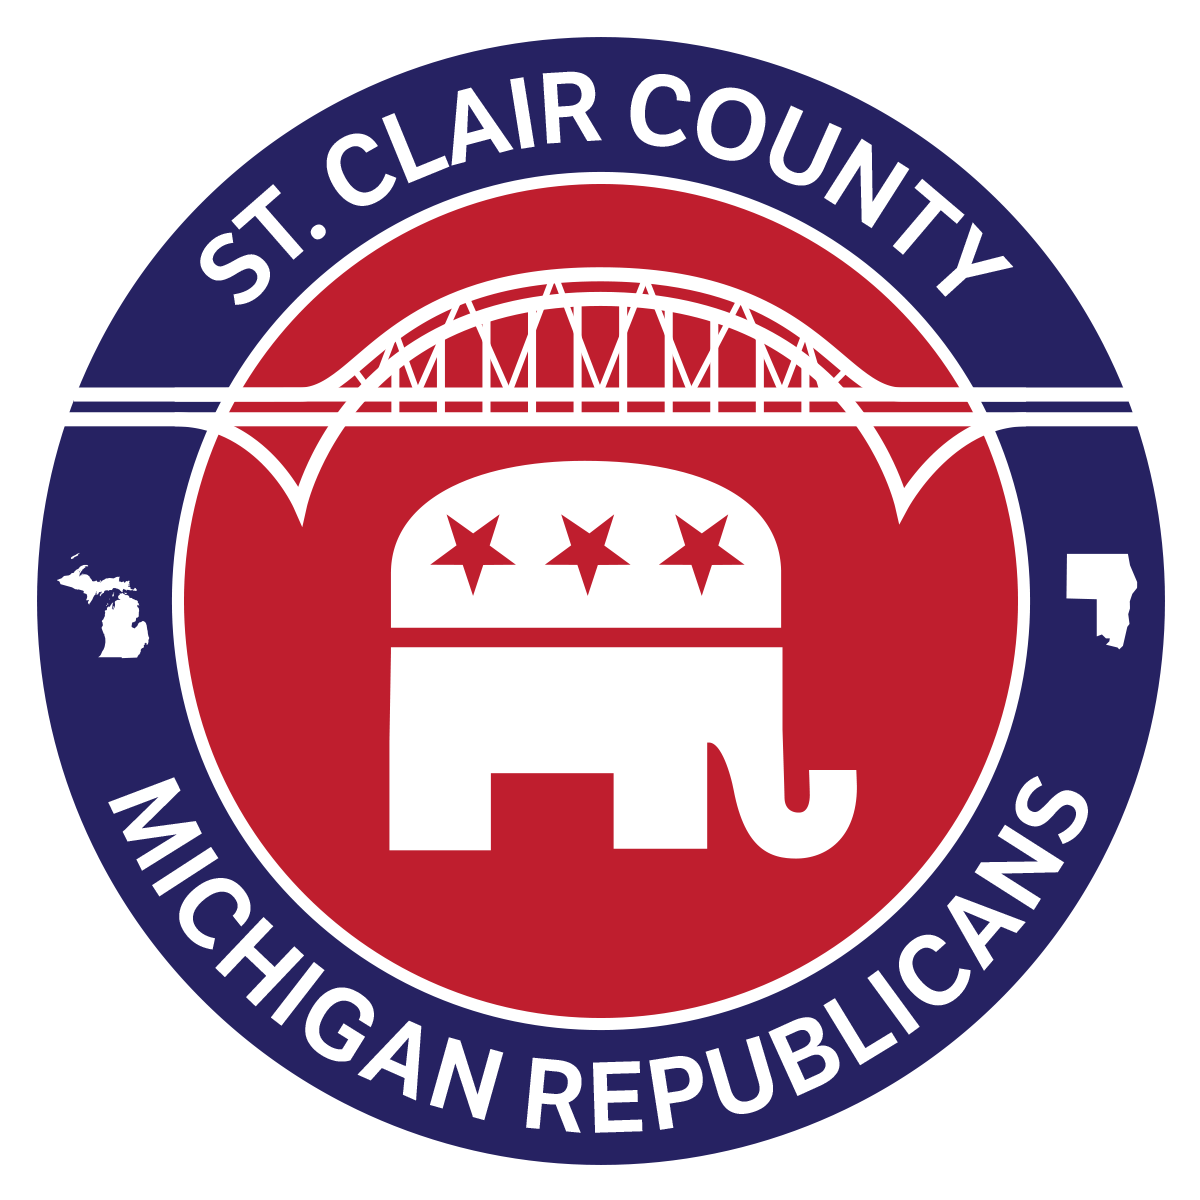 St. Clair County Michigan Republican Party